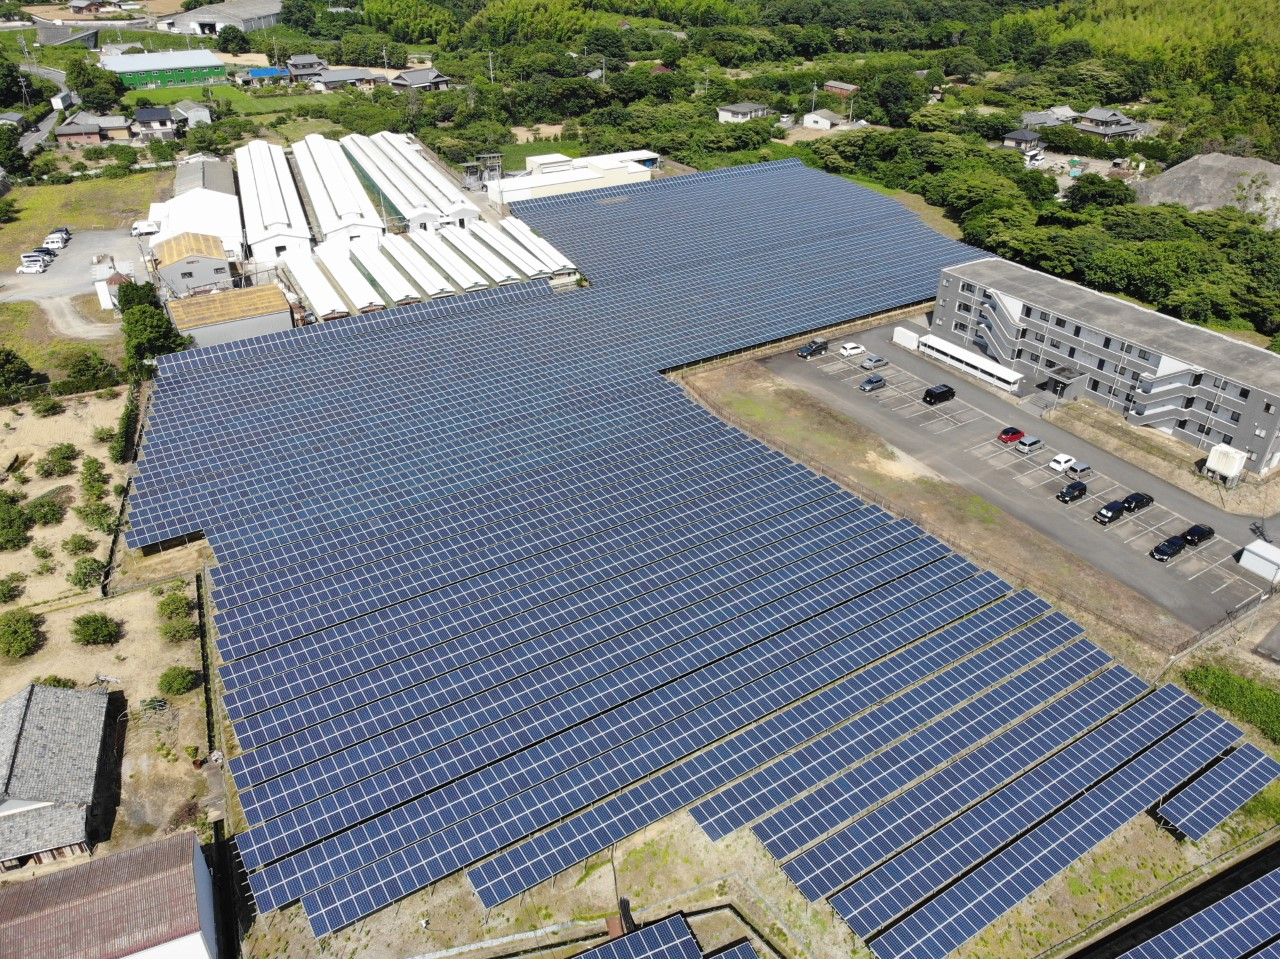 Sonnedix closed financing on a 2.3MW solar park in Mei prefecture, Japan, at the end of 2020 Image: Sonnedix